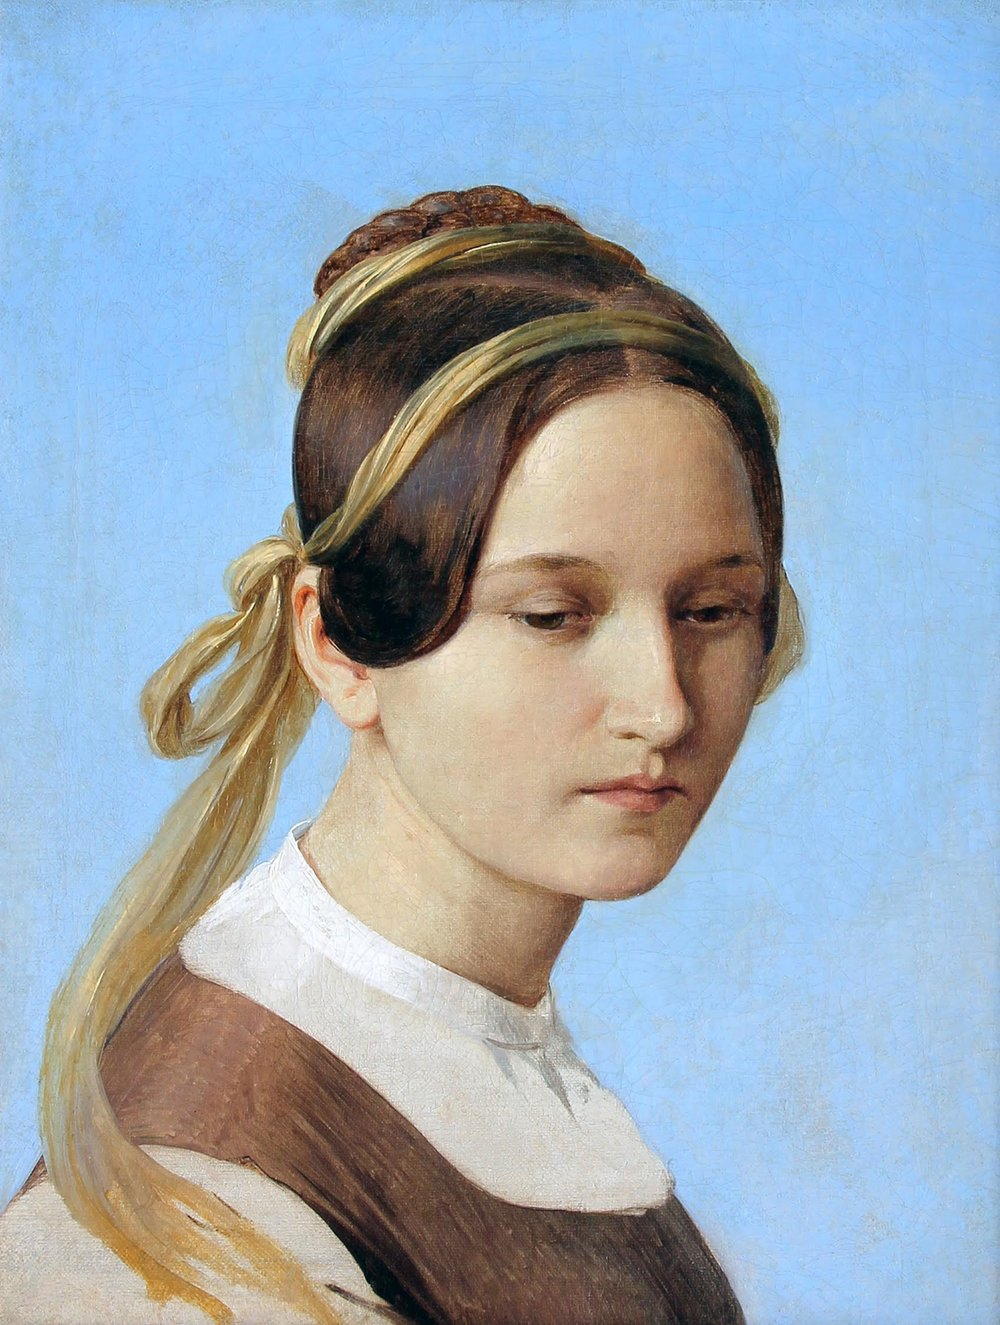 CARL FERDINAND SOHN Study for Disappointed Love Oil on canvas 16 x 12¾ inches (40.6 x 32.4 cm) $35,000 Click here for more information